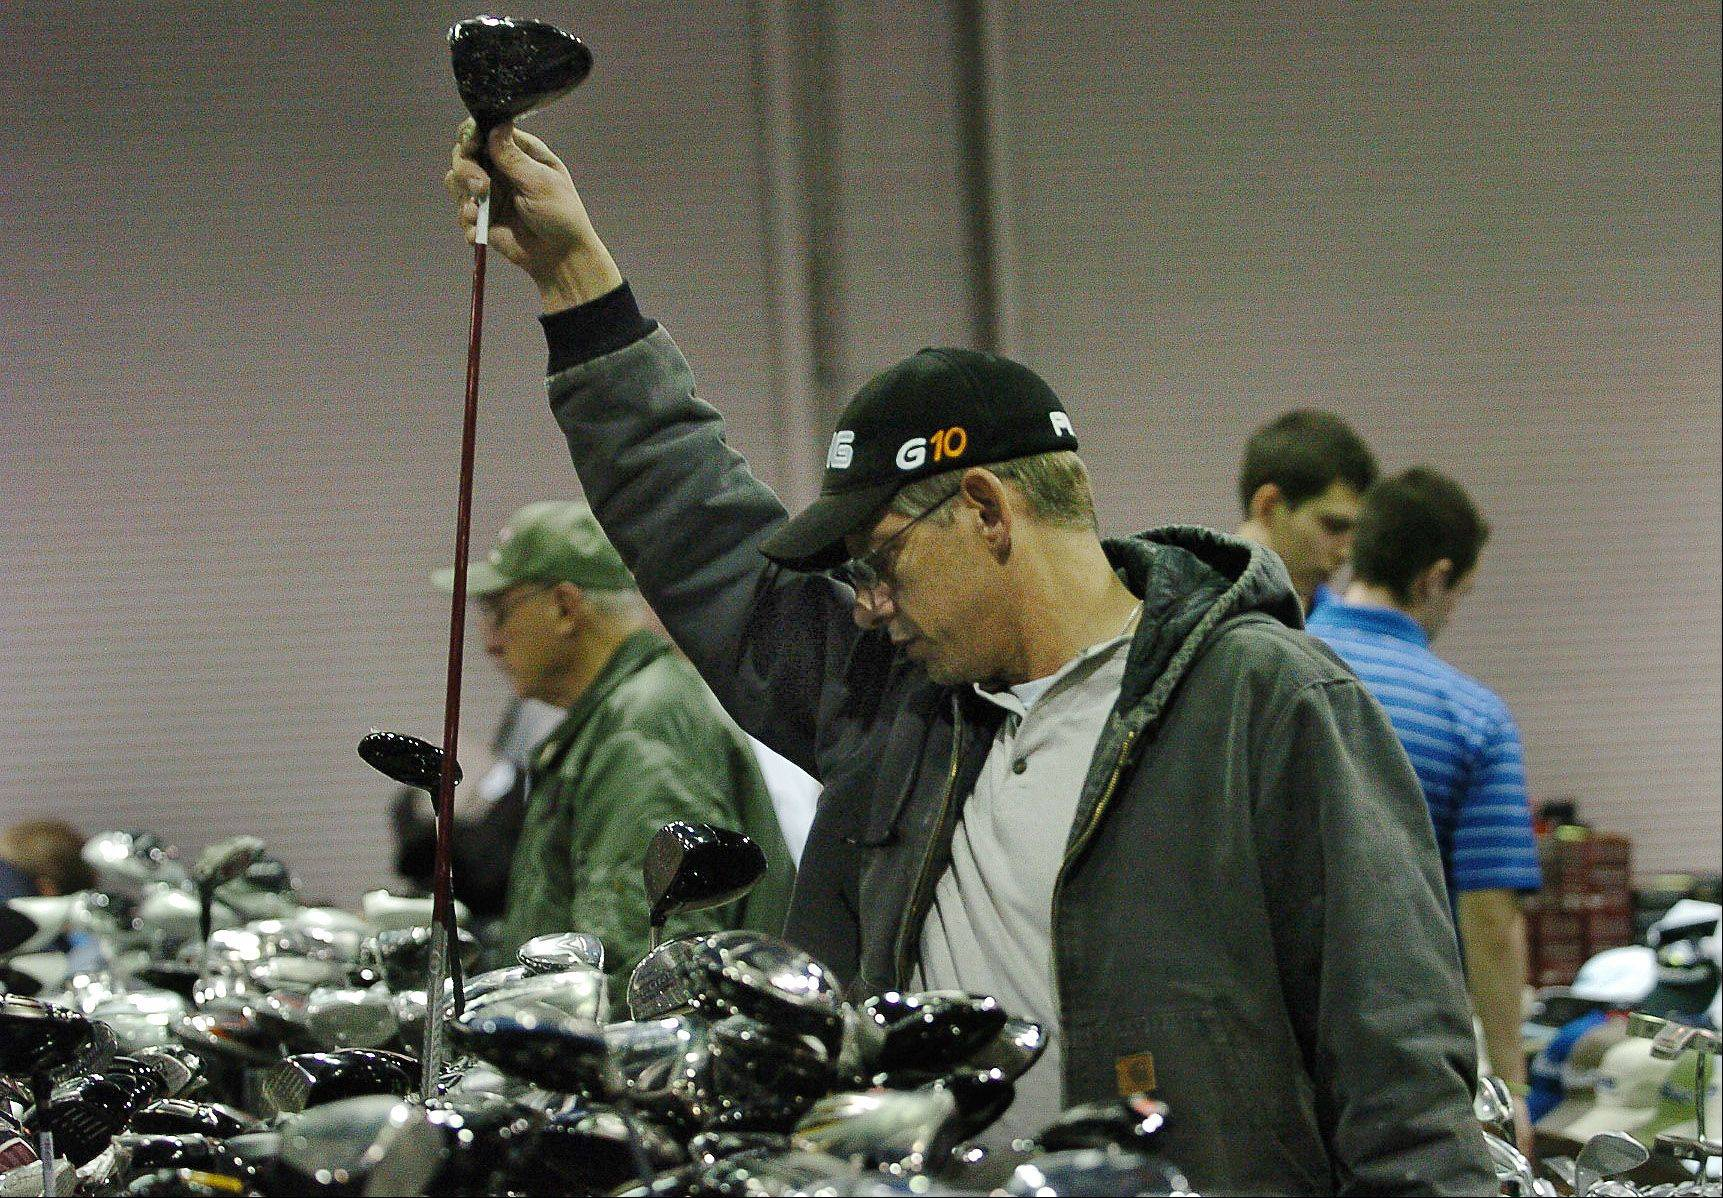 The Chicago Golf Show will celebrate its 30th anniversary when it opens on Friday at the Donald E. Stephens Convention Center in Rosemont.